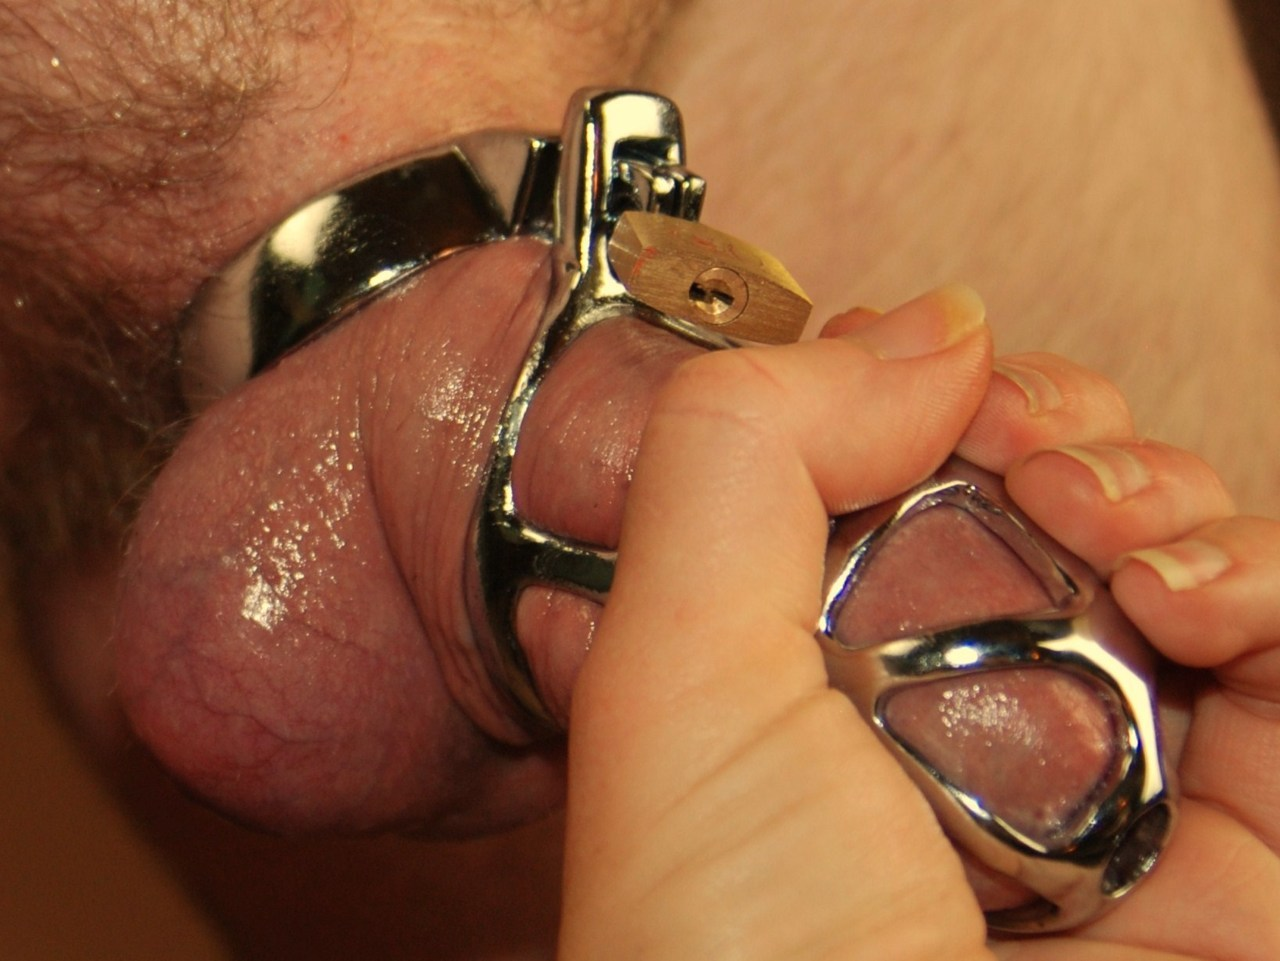 Large Lust Chastity In Locked Male